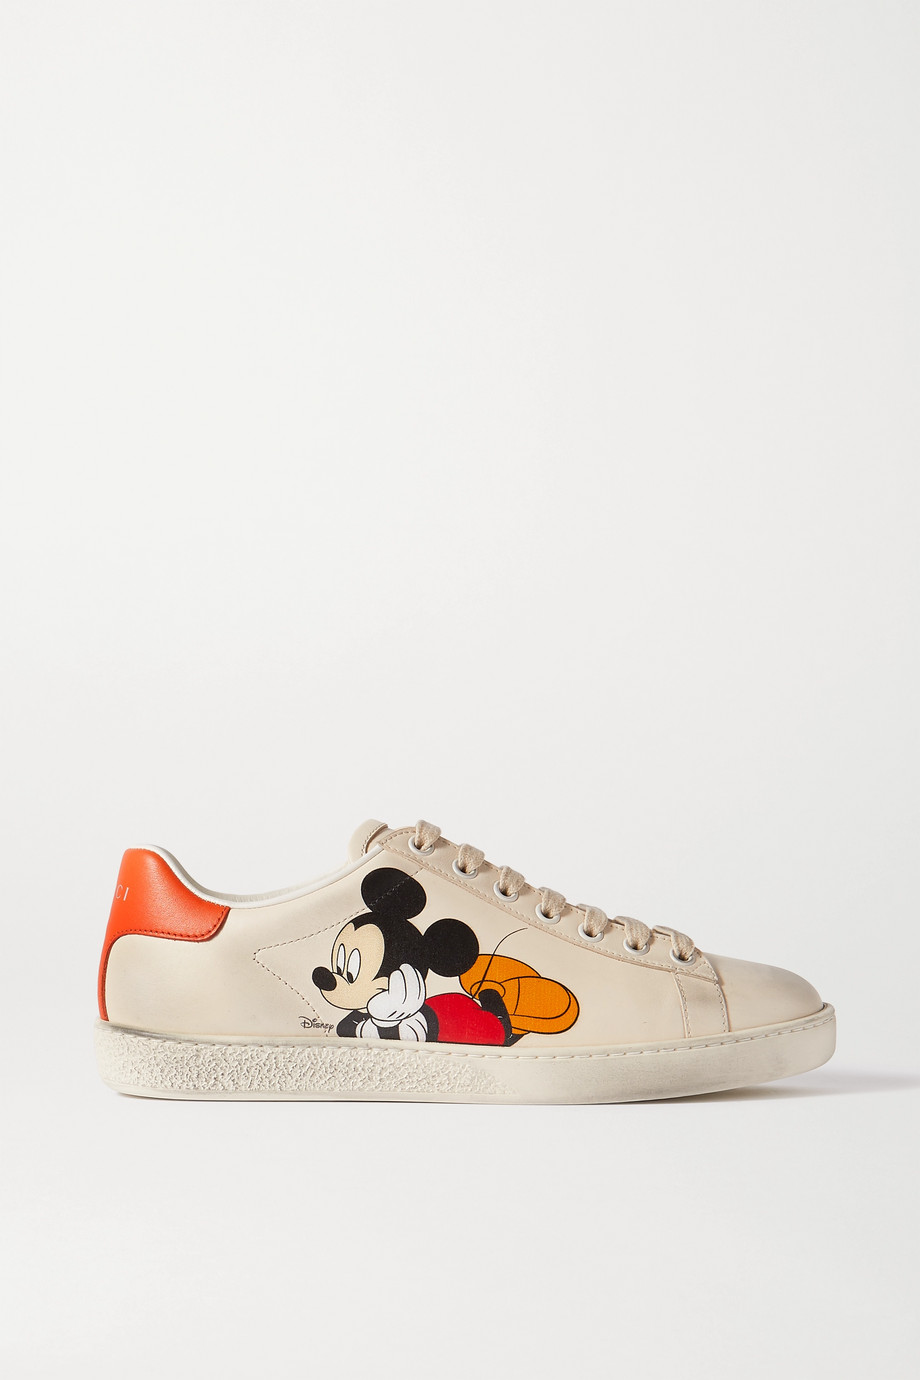 Gucci Baskets en cuir imprimé Ace x Disney